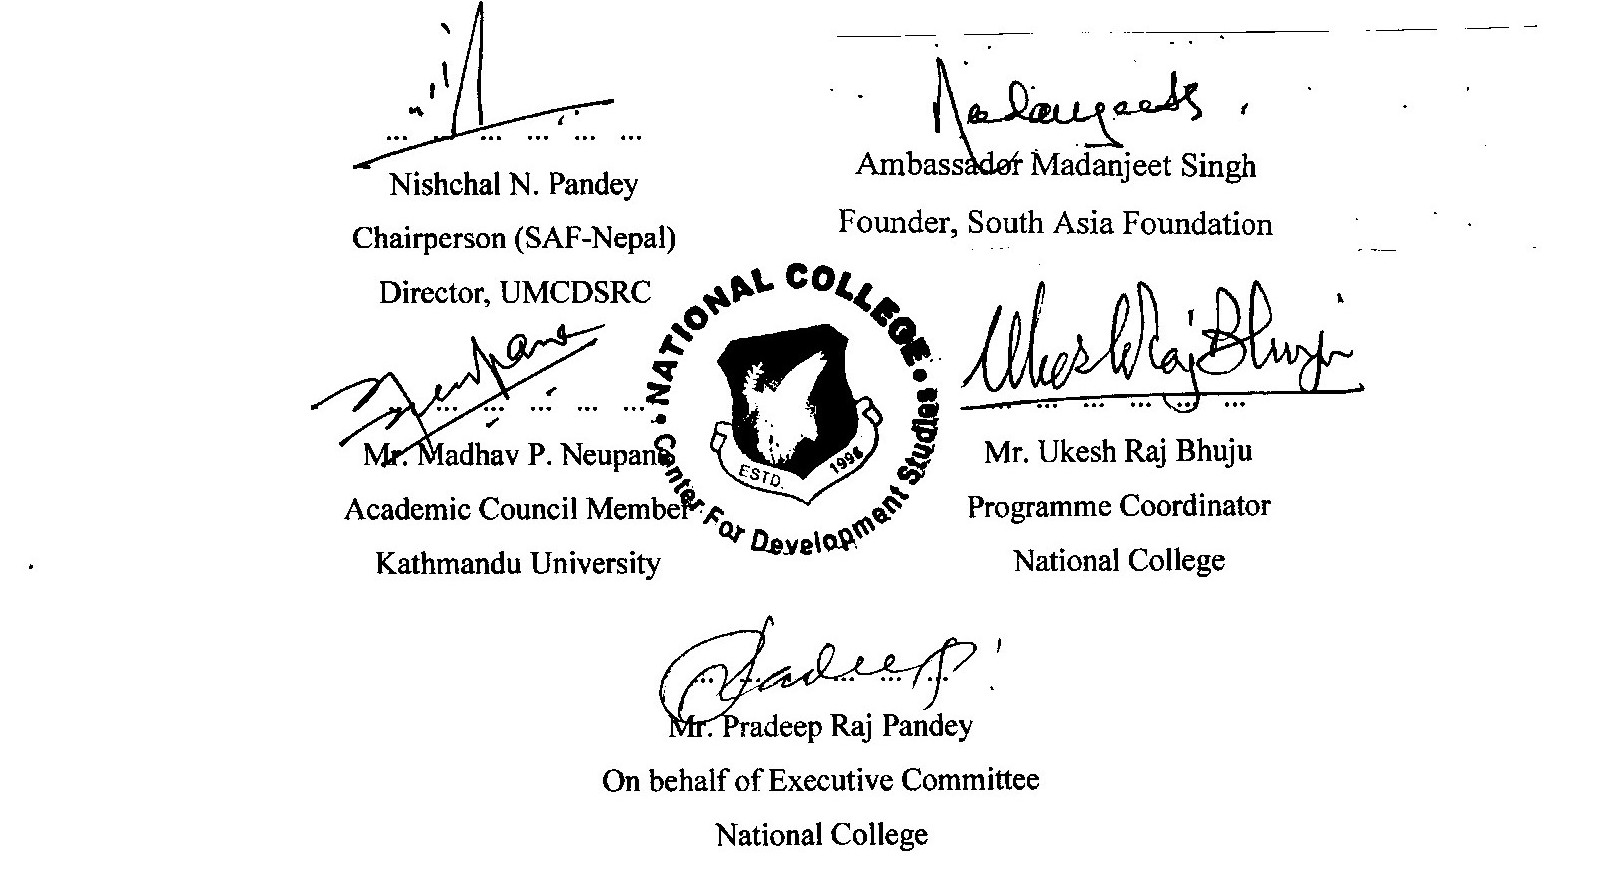 Signed MoU by UMCDSRC - South Asia Foundation